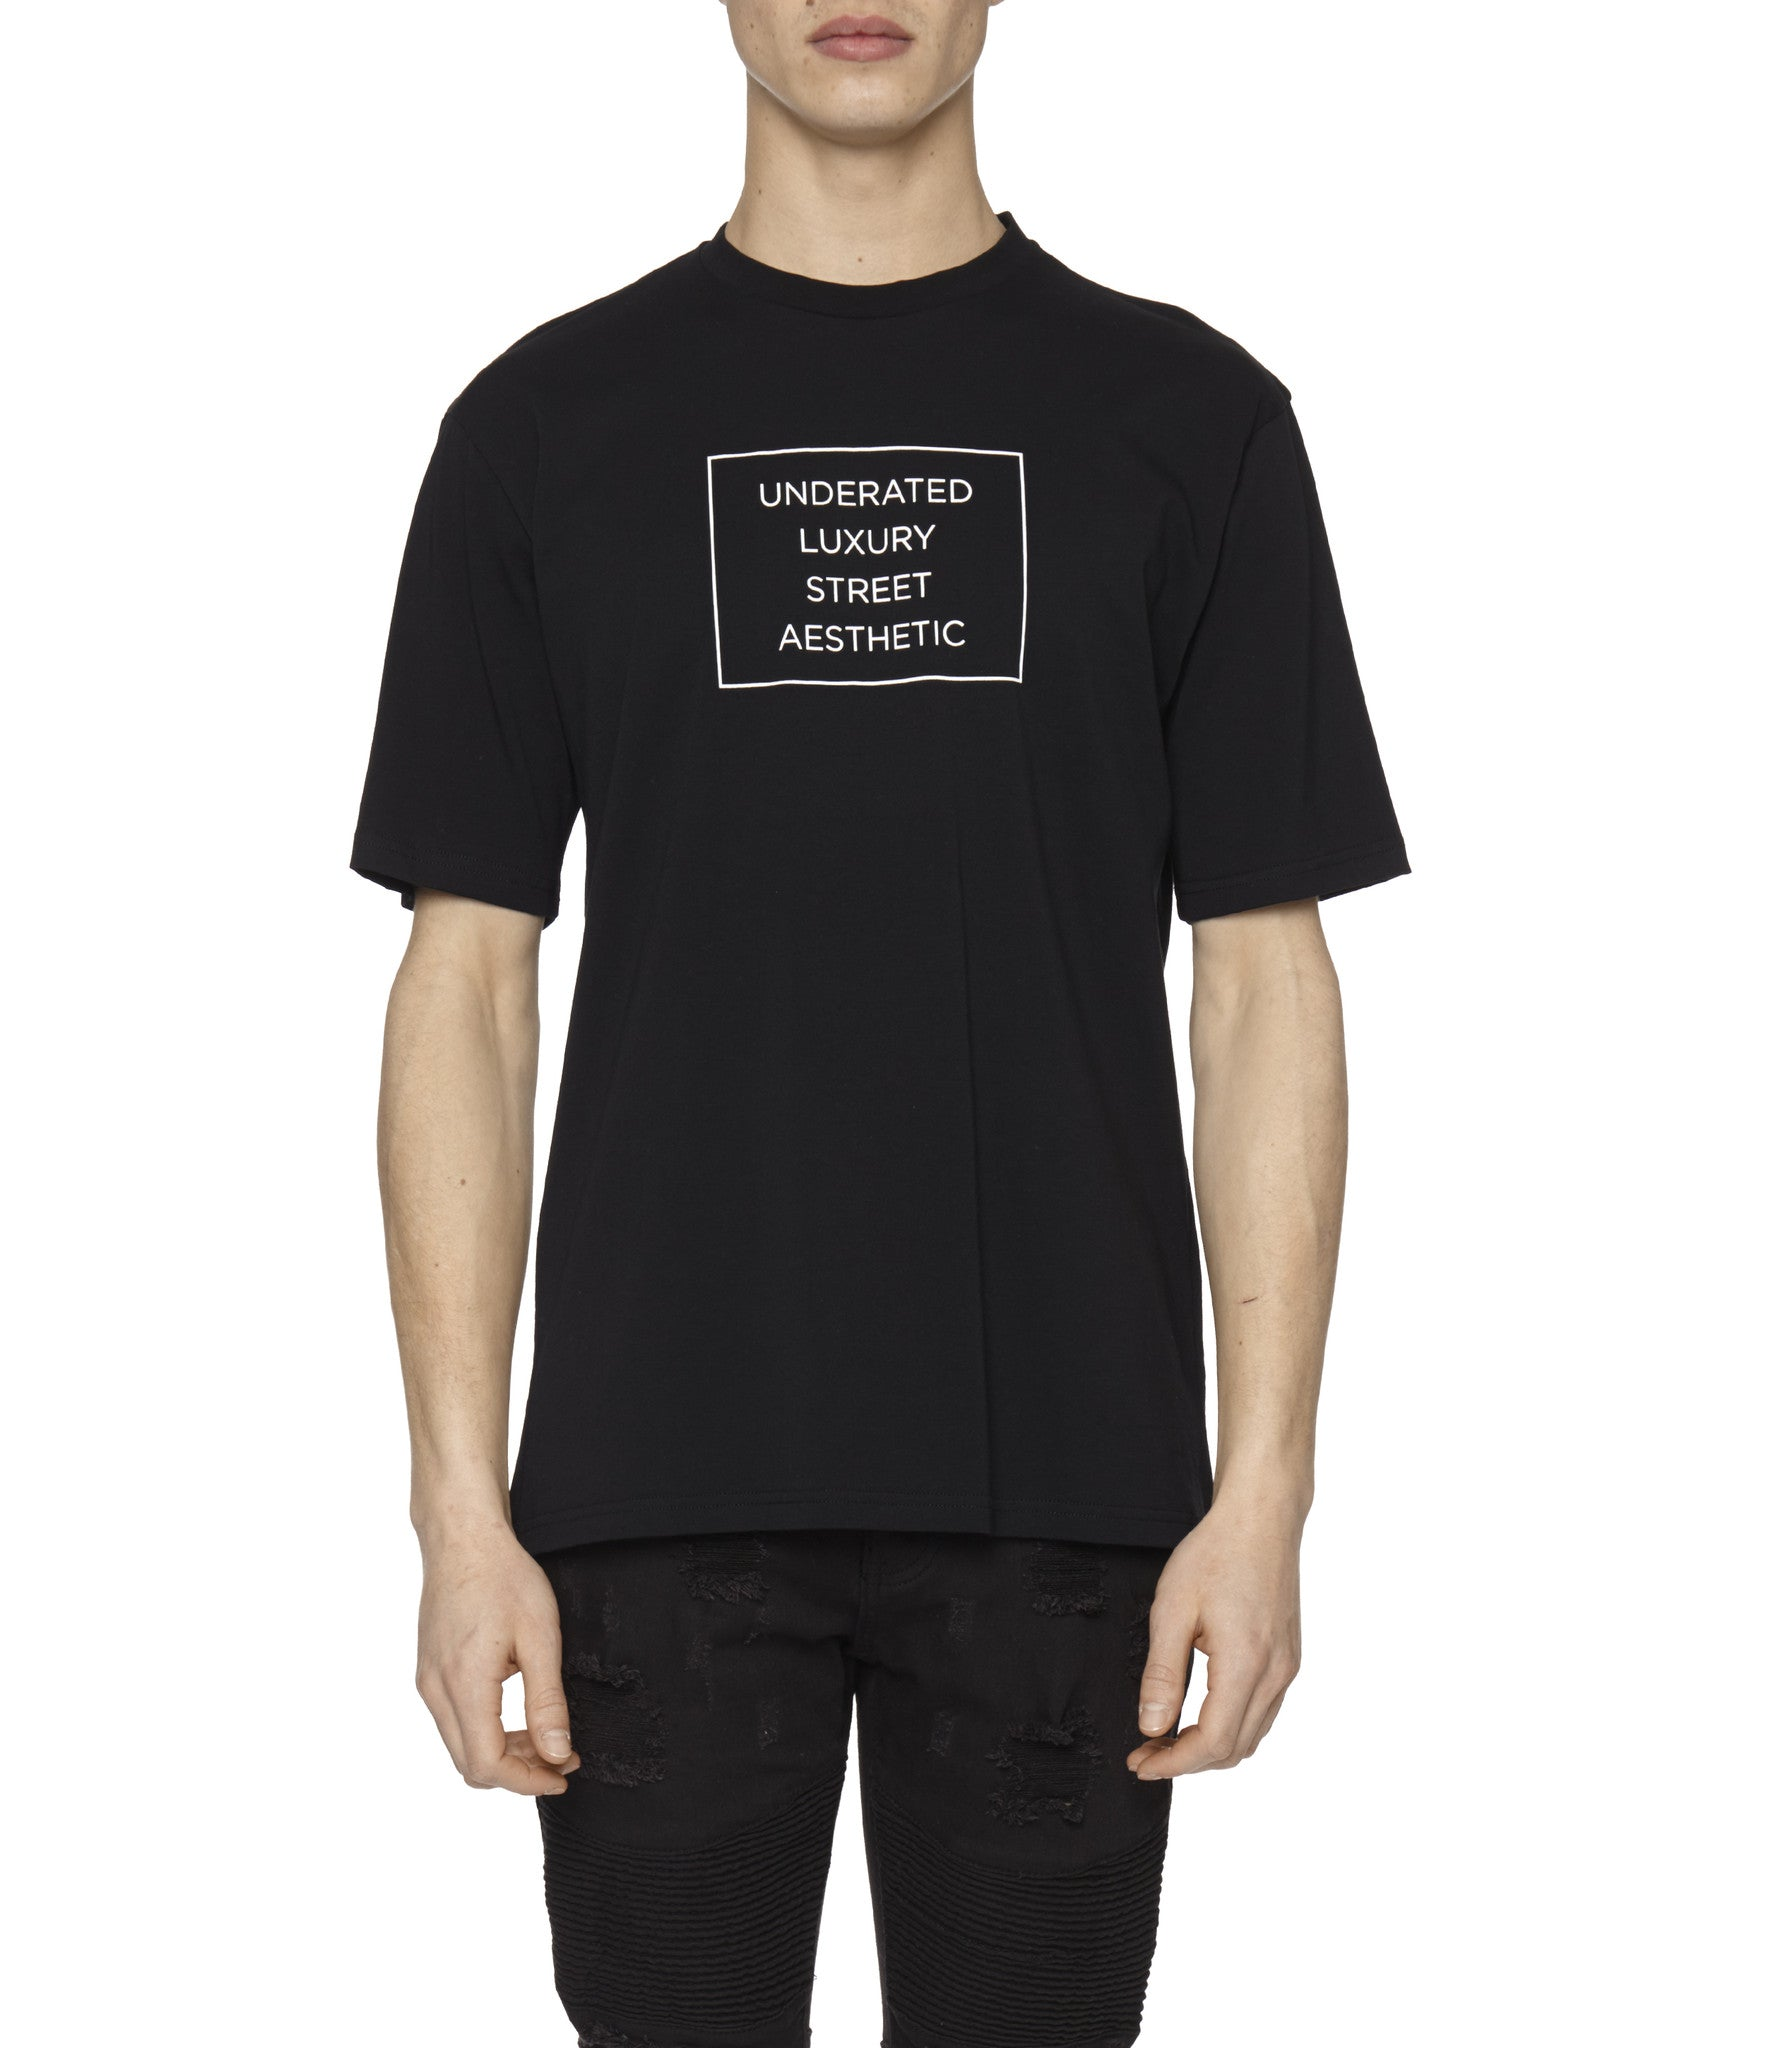 TS319 Box Logo Printed Tee - Black - underated london - underatedco - 4